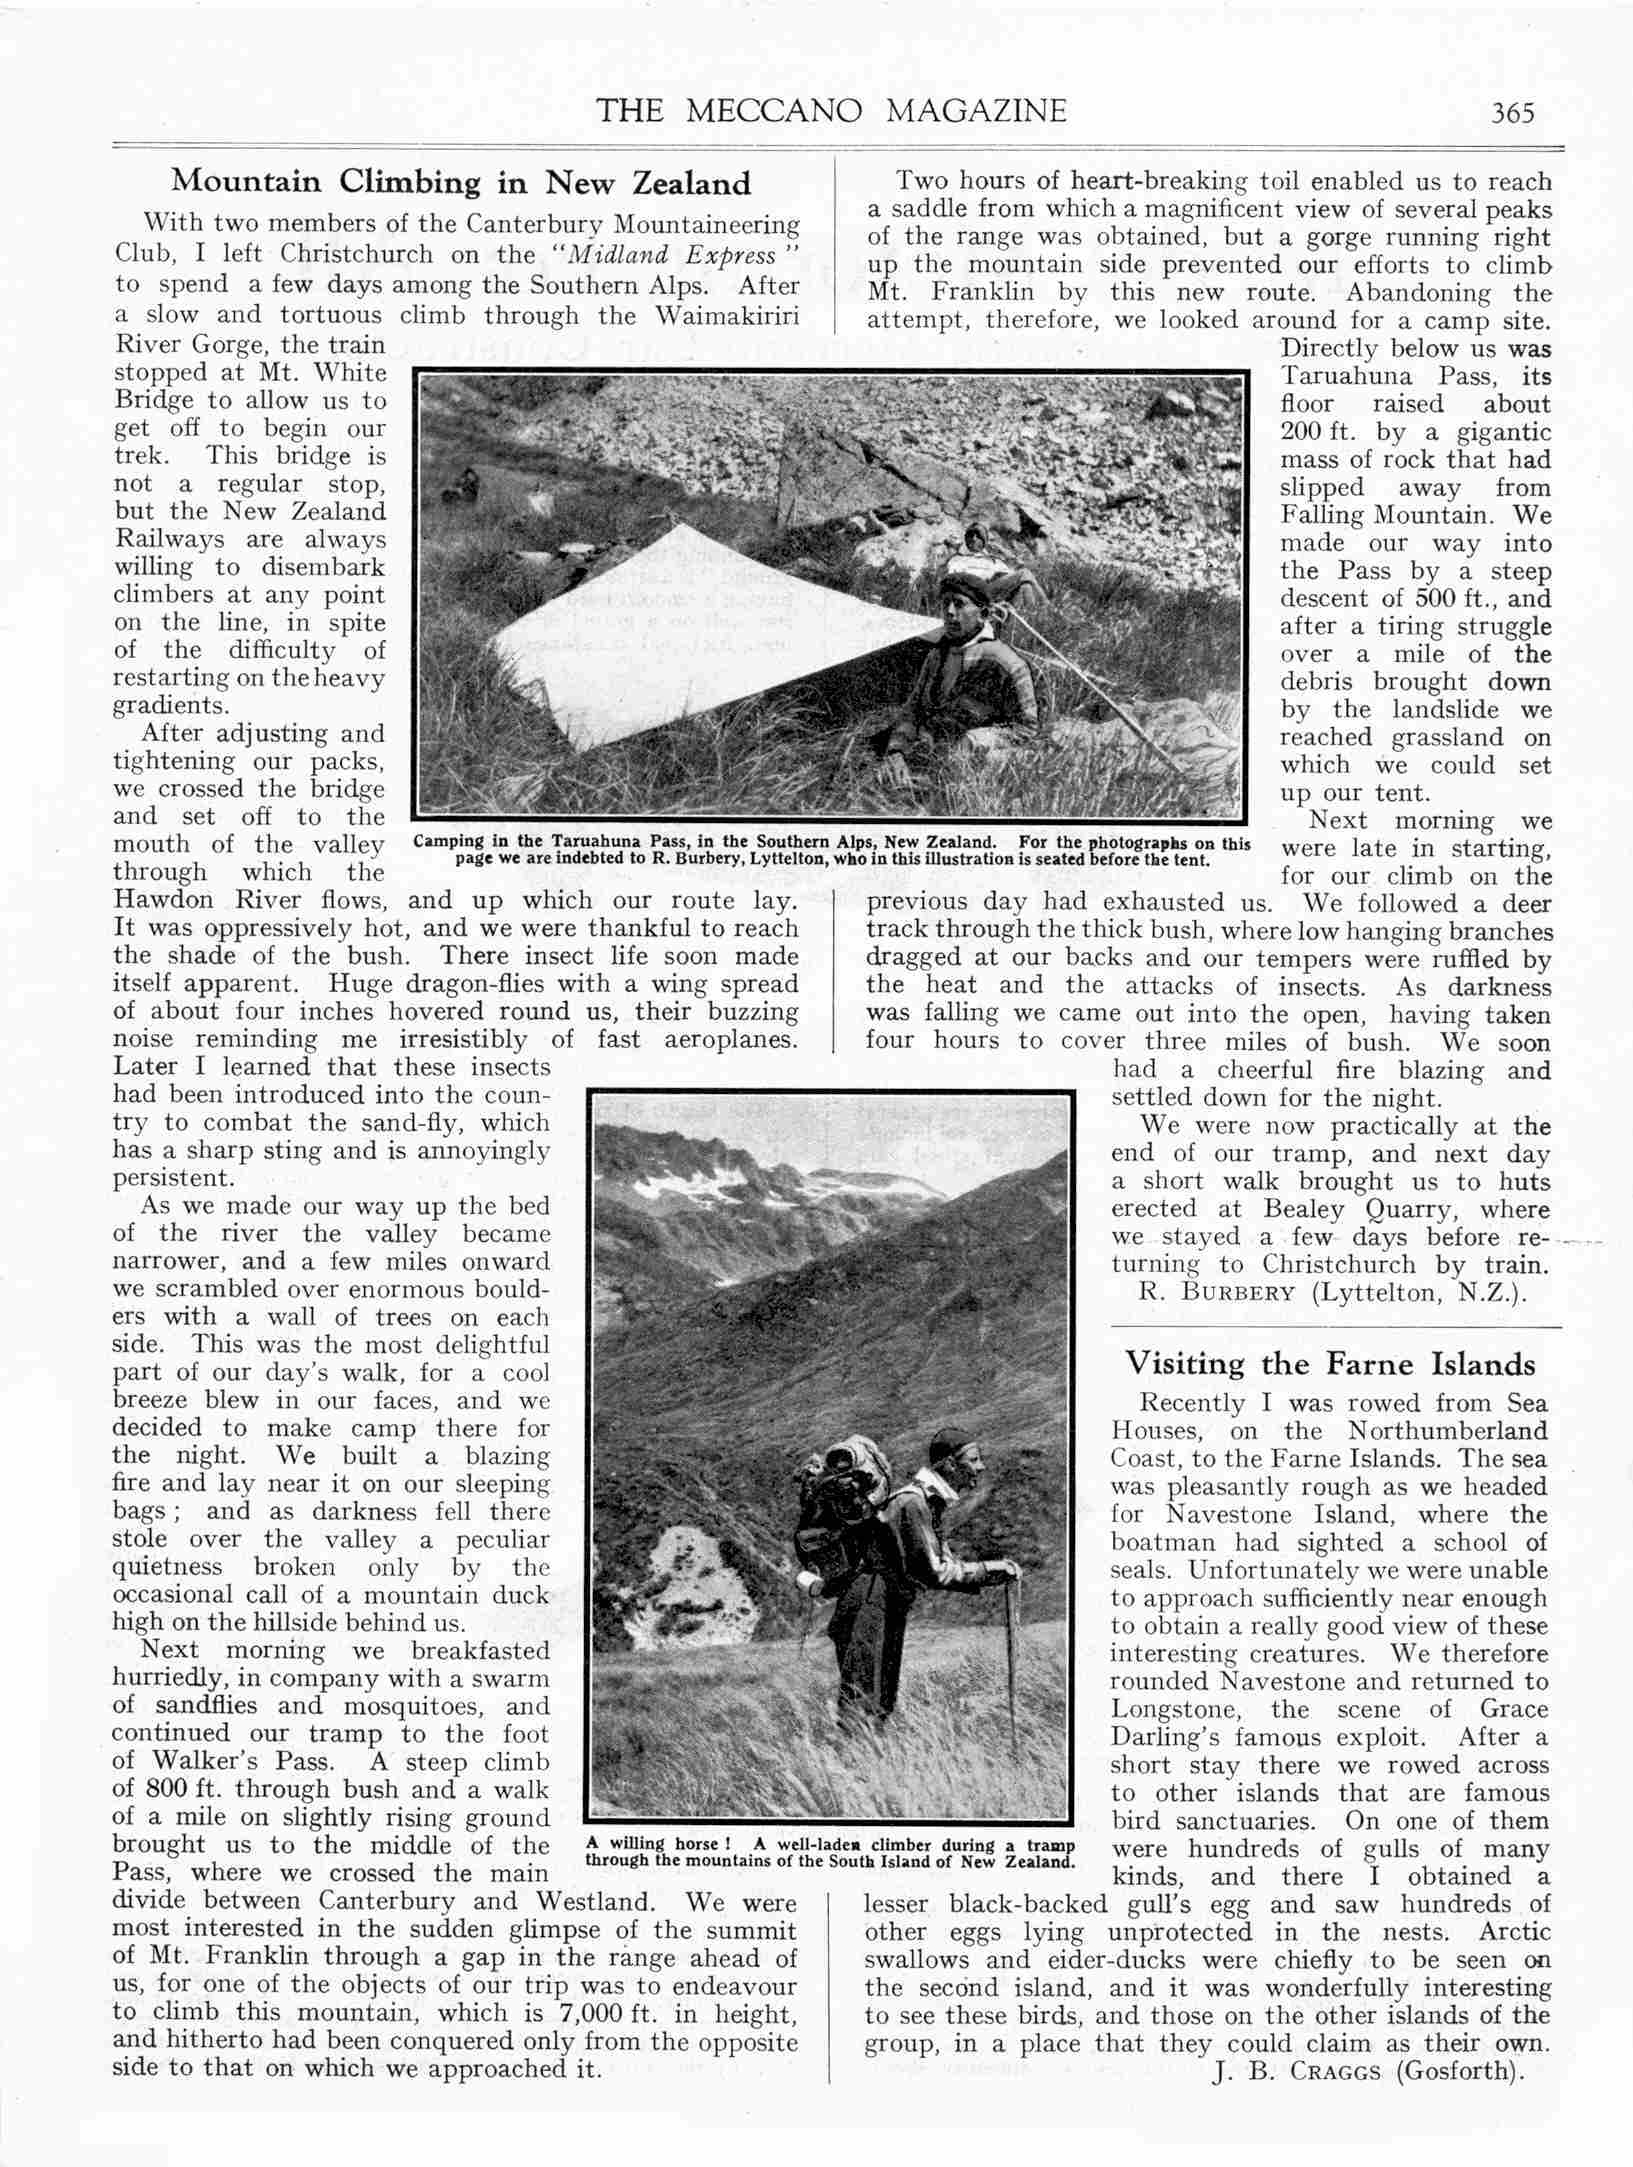 UK Meccano Magazine May 1933 Page 365